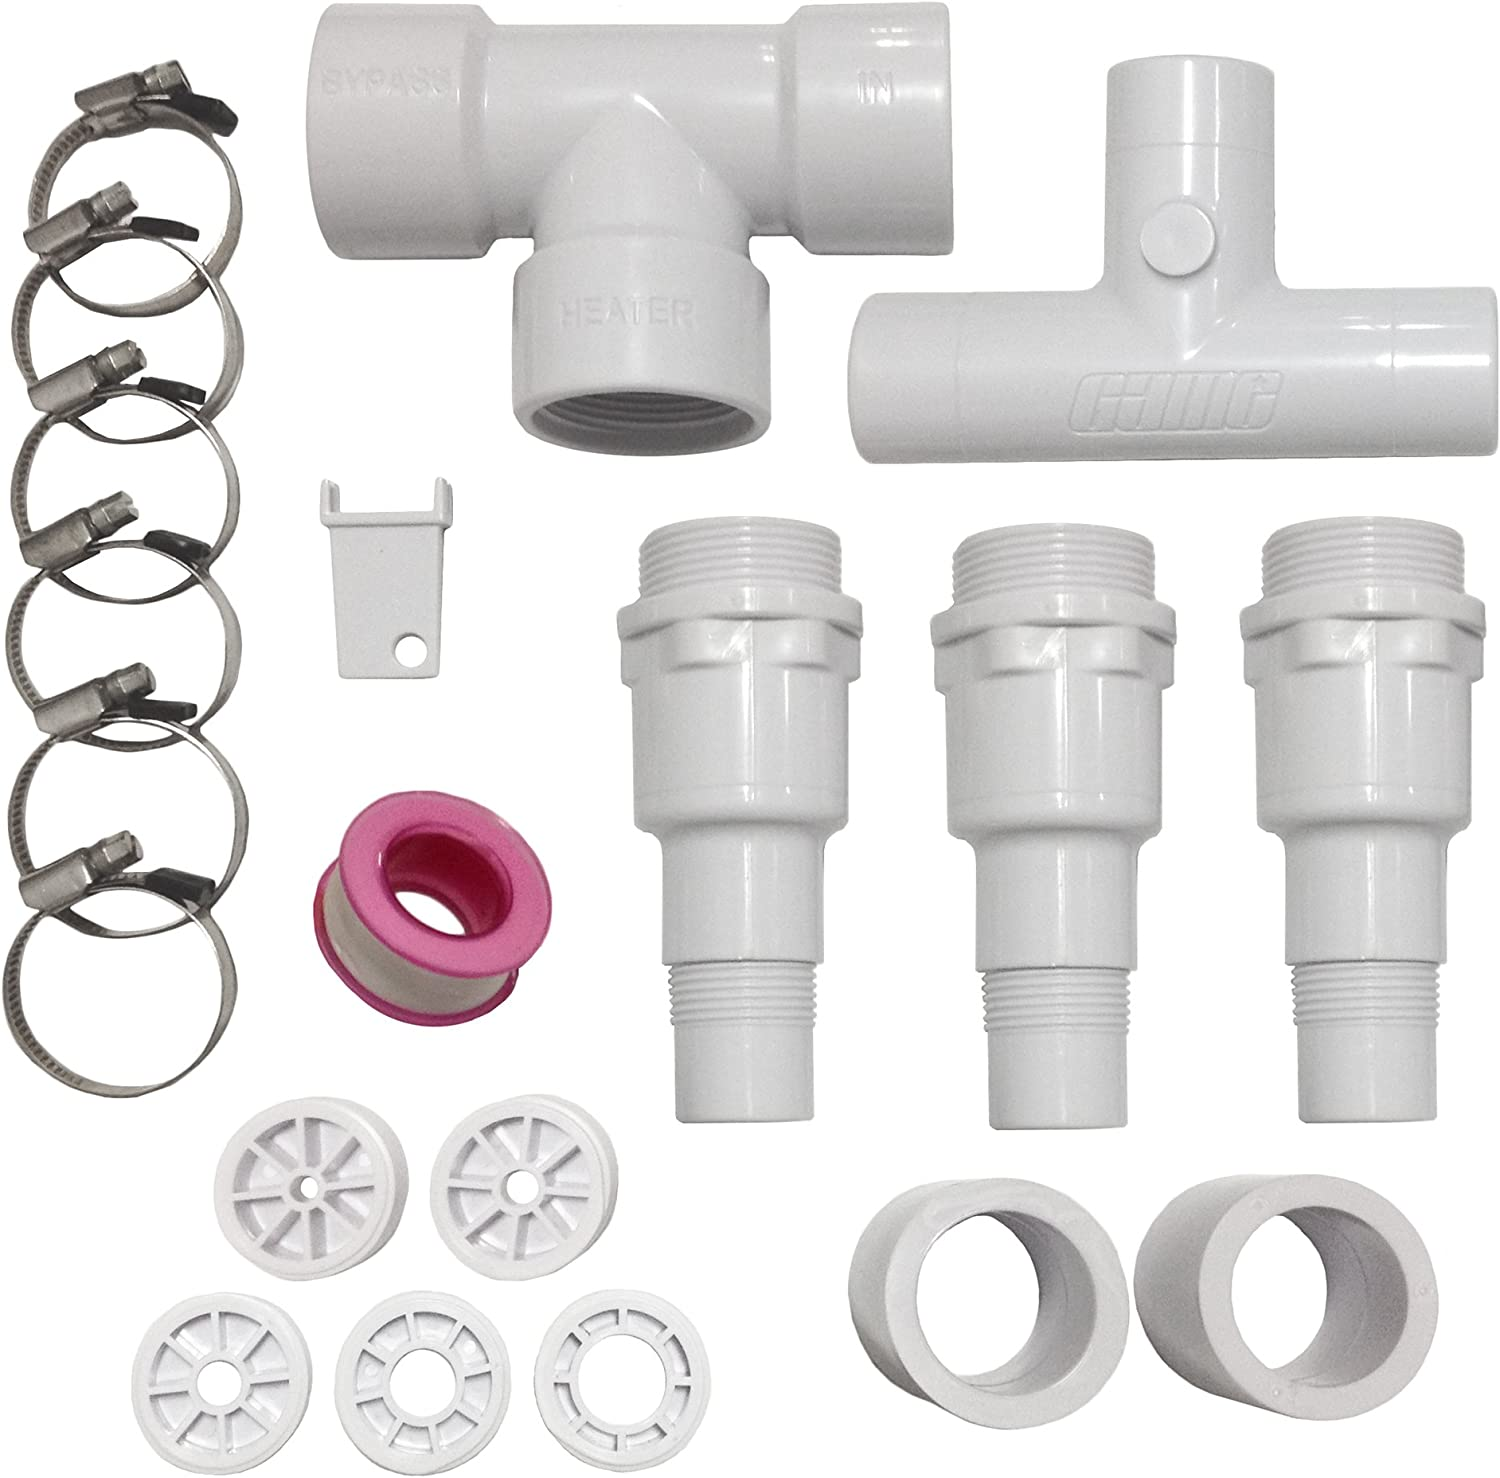 GAME NS6127 Bypass Kit Replacement Part, for Use SolarPRO Heaters Only, Required for In-Ground Pools and Attaching Multiple Units